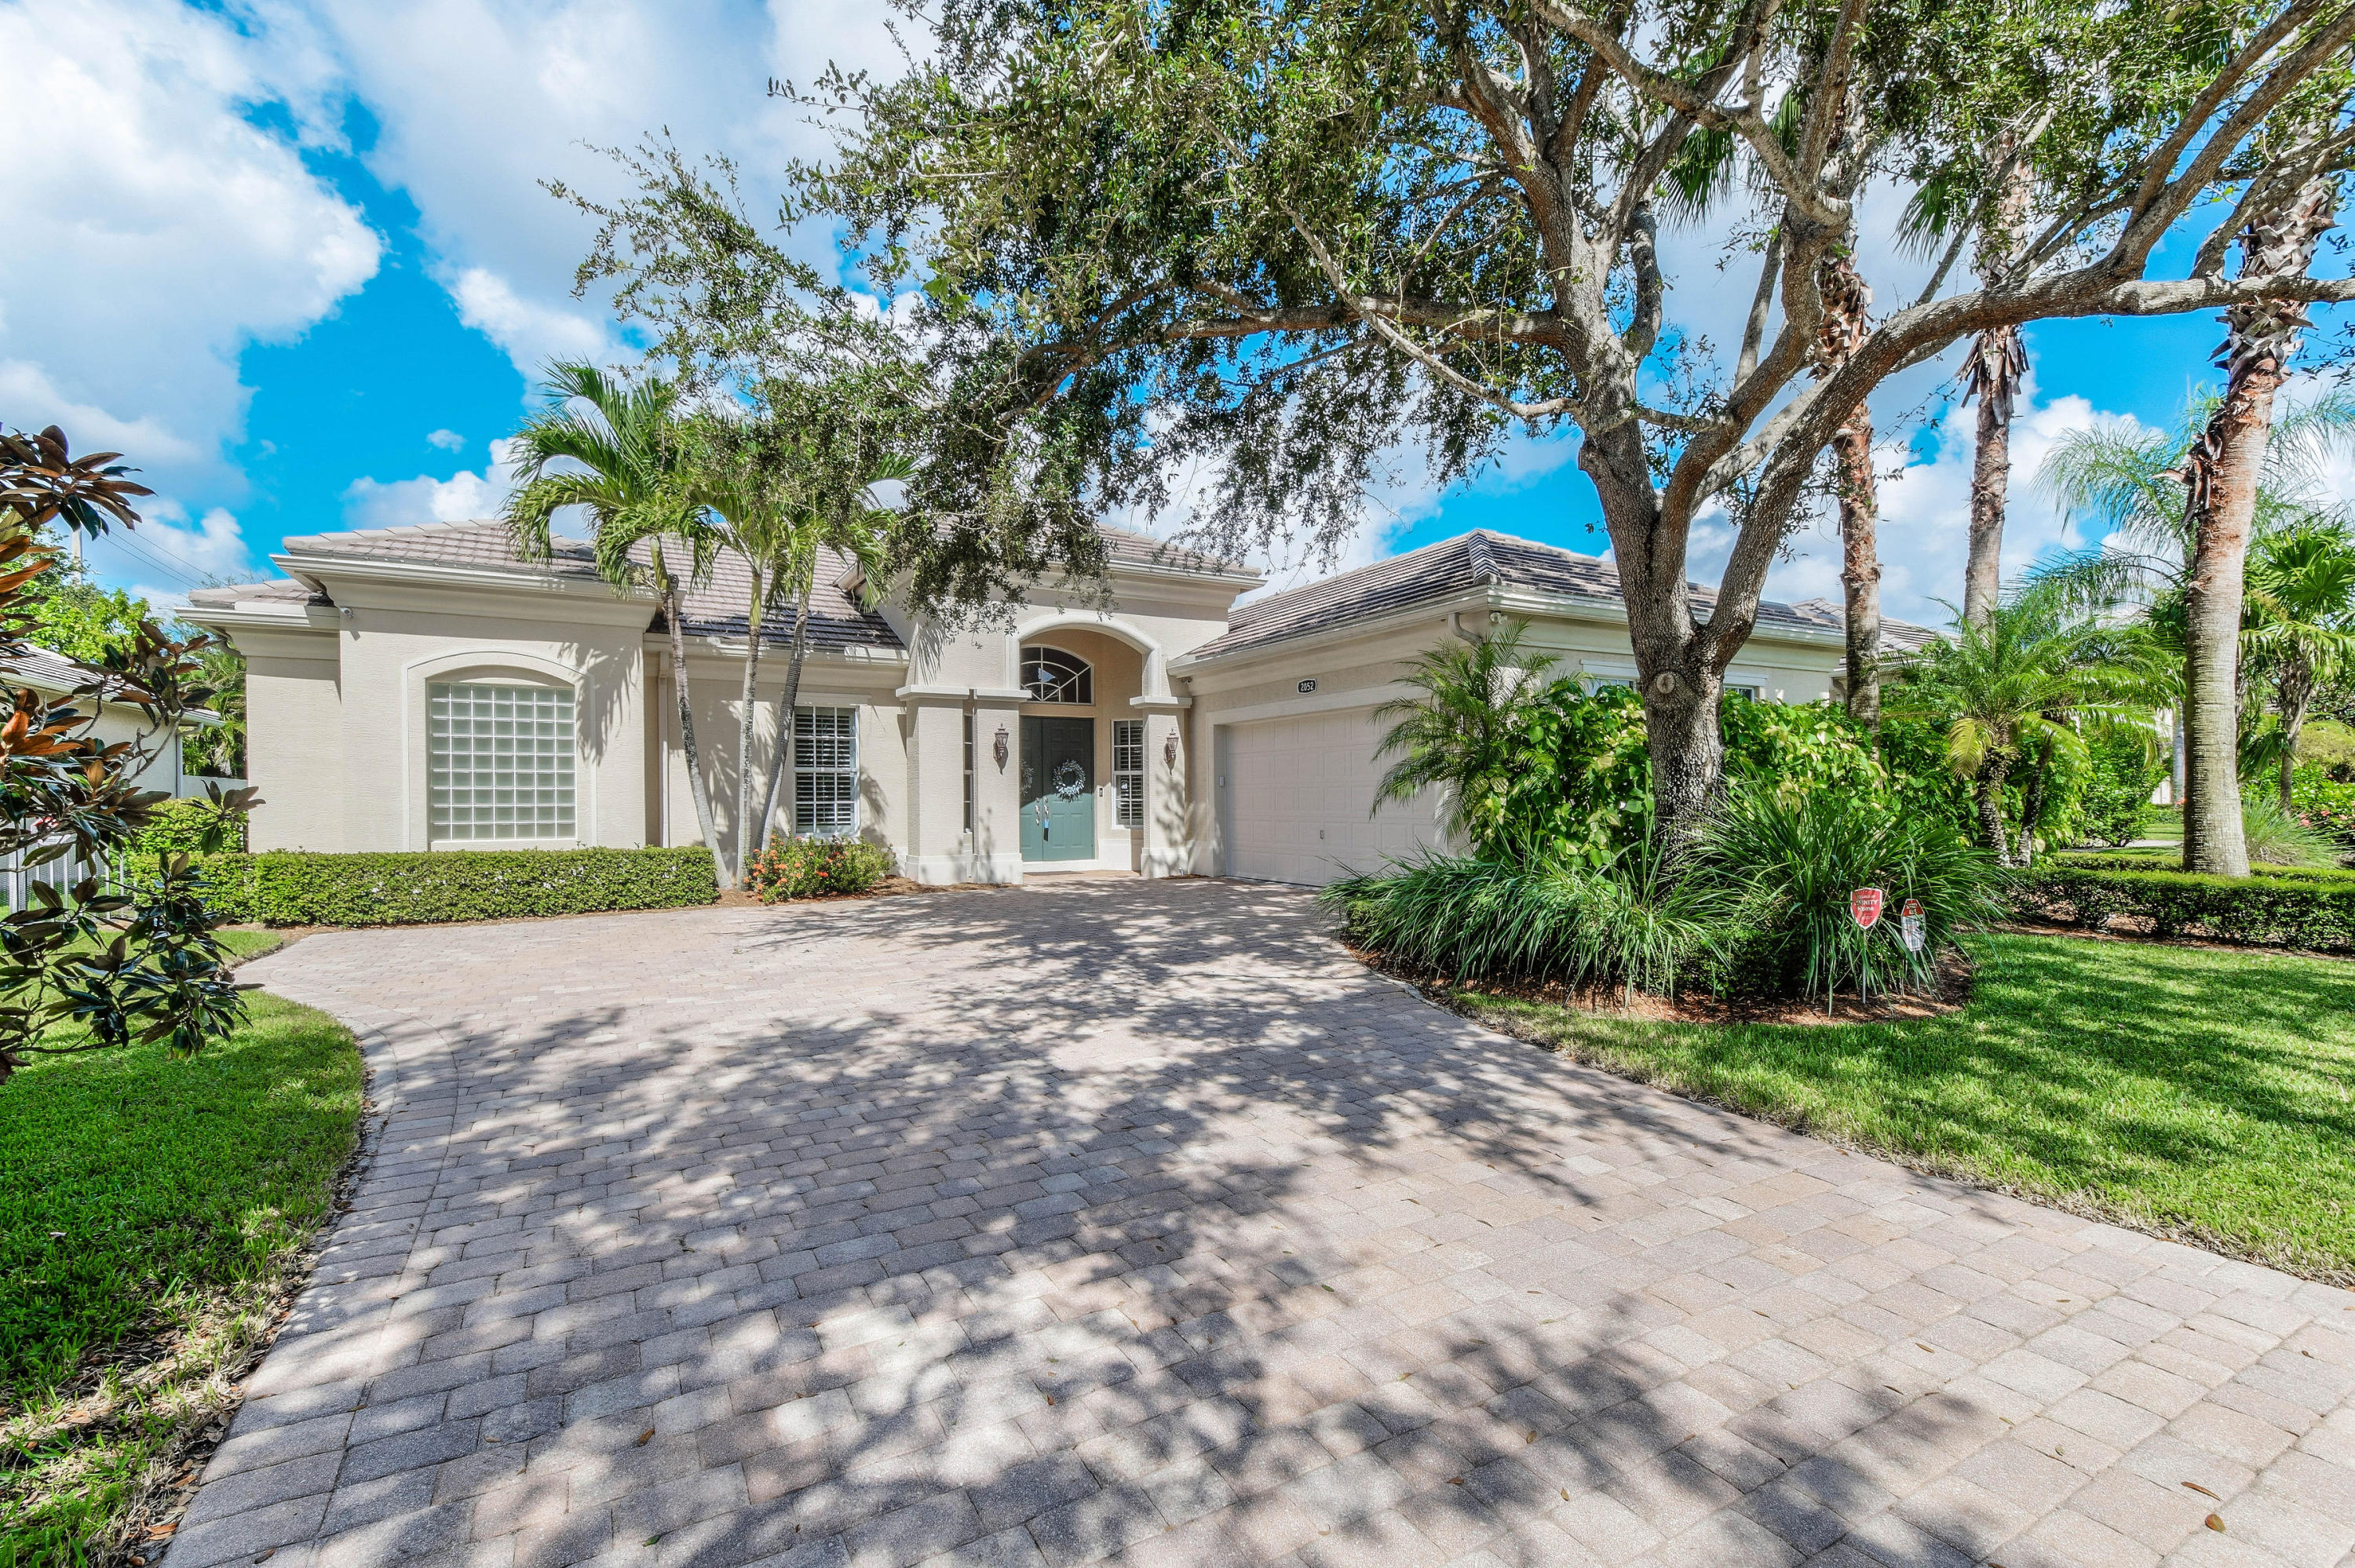 2052 Wightman Drive- Wellington- Florida 33414, 3 Bedrooms Bedrooms, ,3 BathroomsBathrooms,Single Family,For Rent,Palm Beach Polo,Wightman,RX-10515854